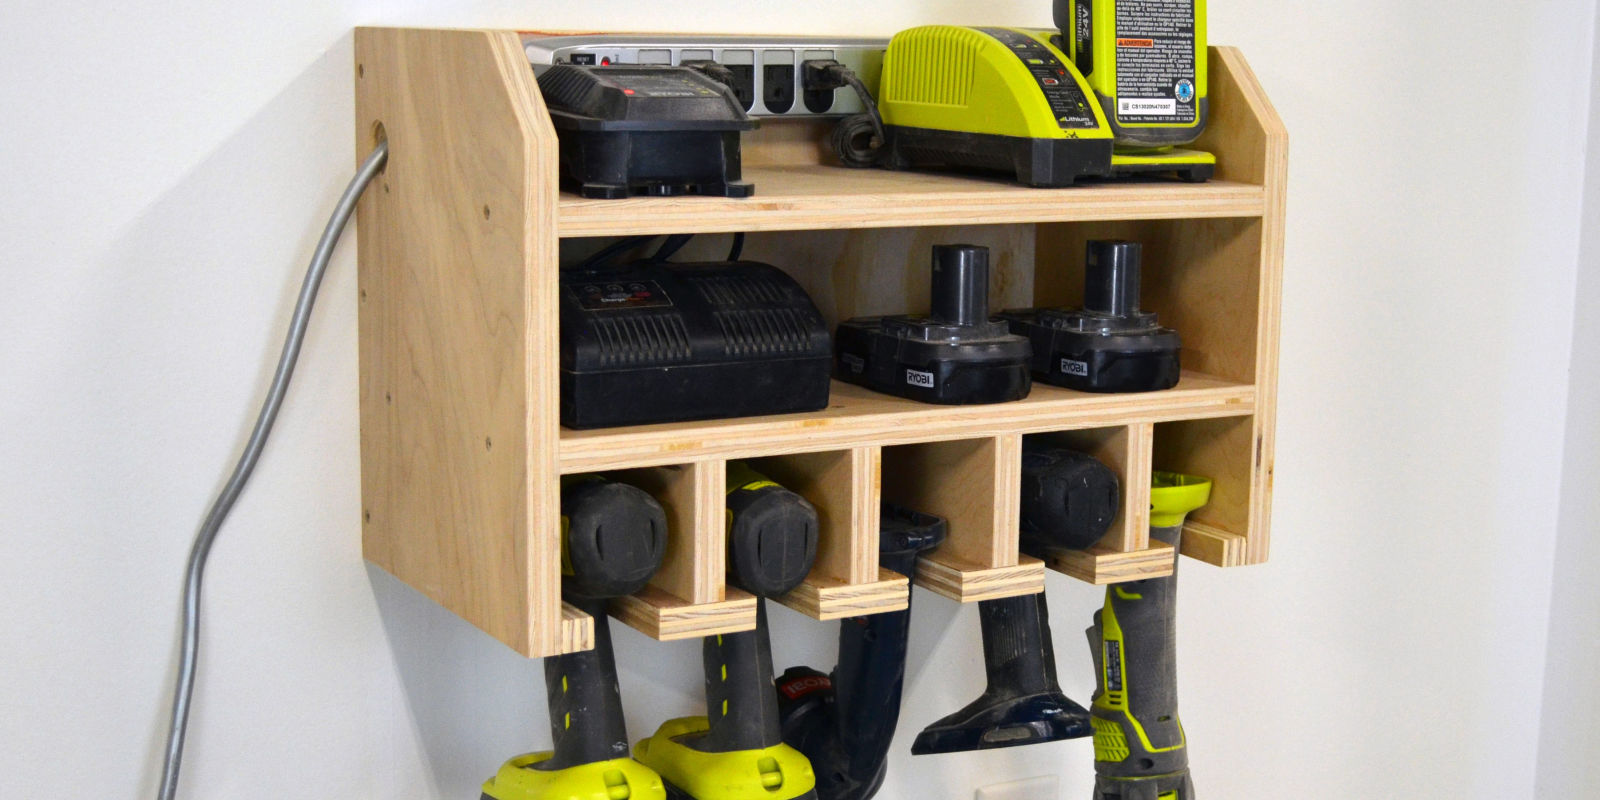 How To Build A Storage Dock For Your Cordless Drill